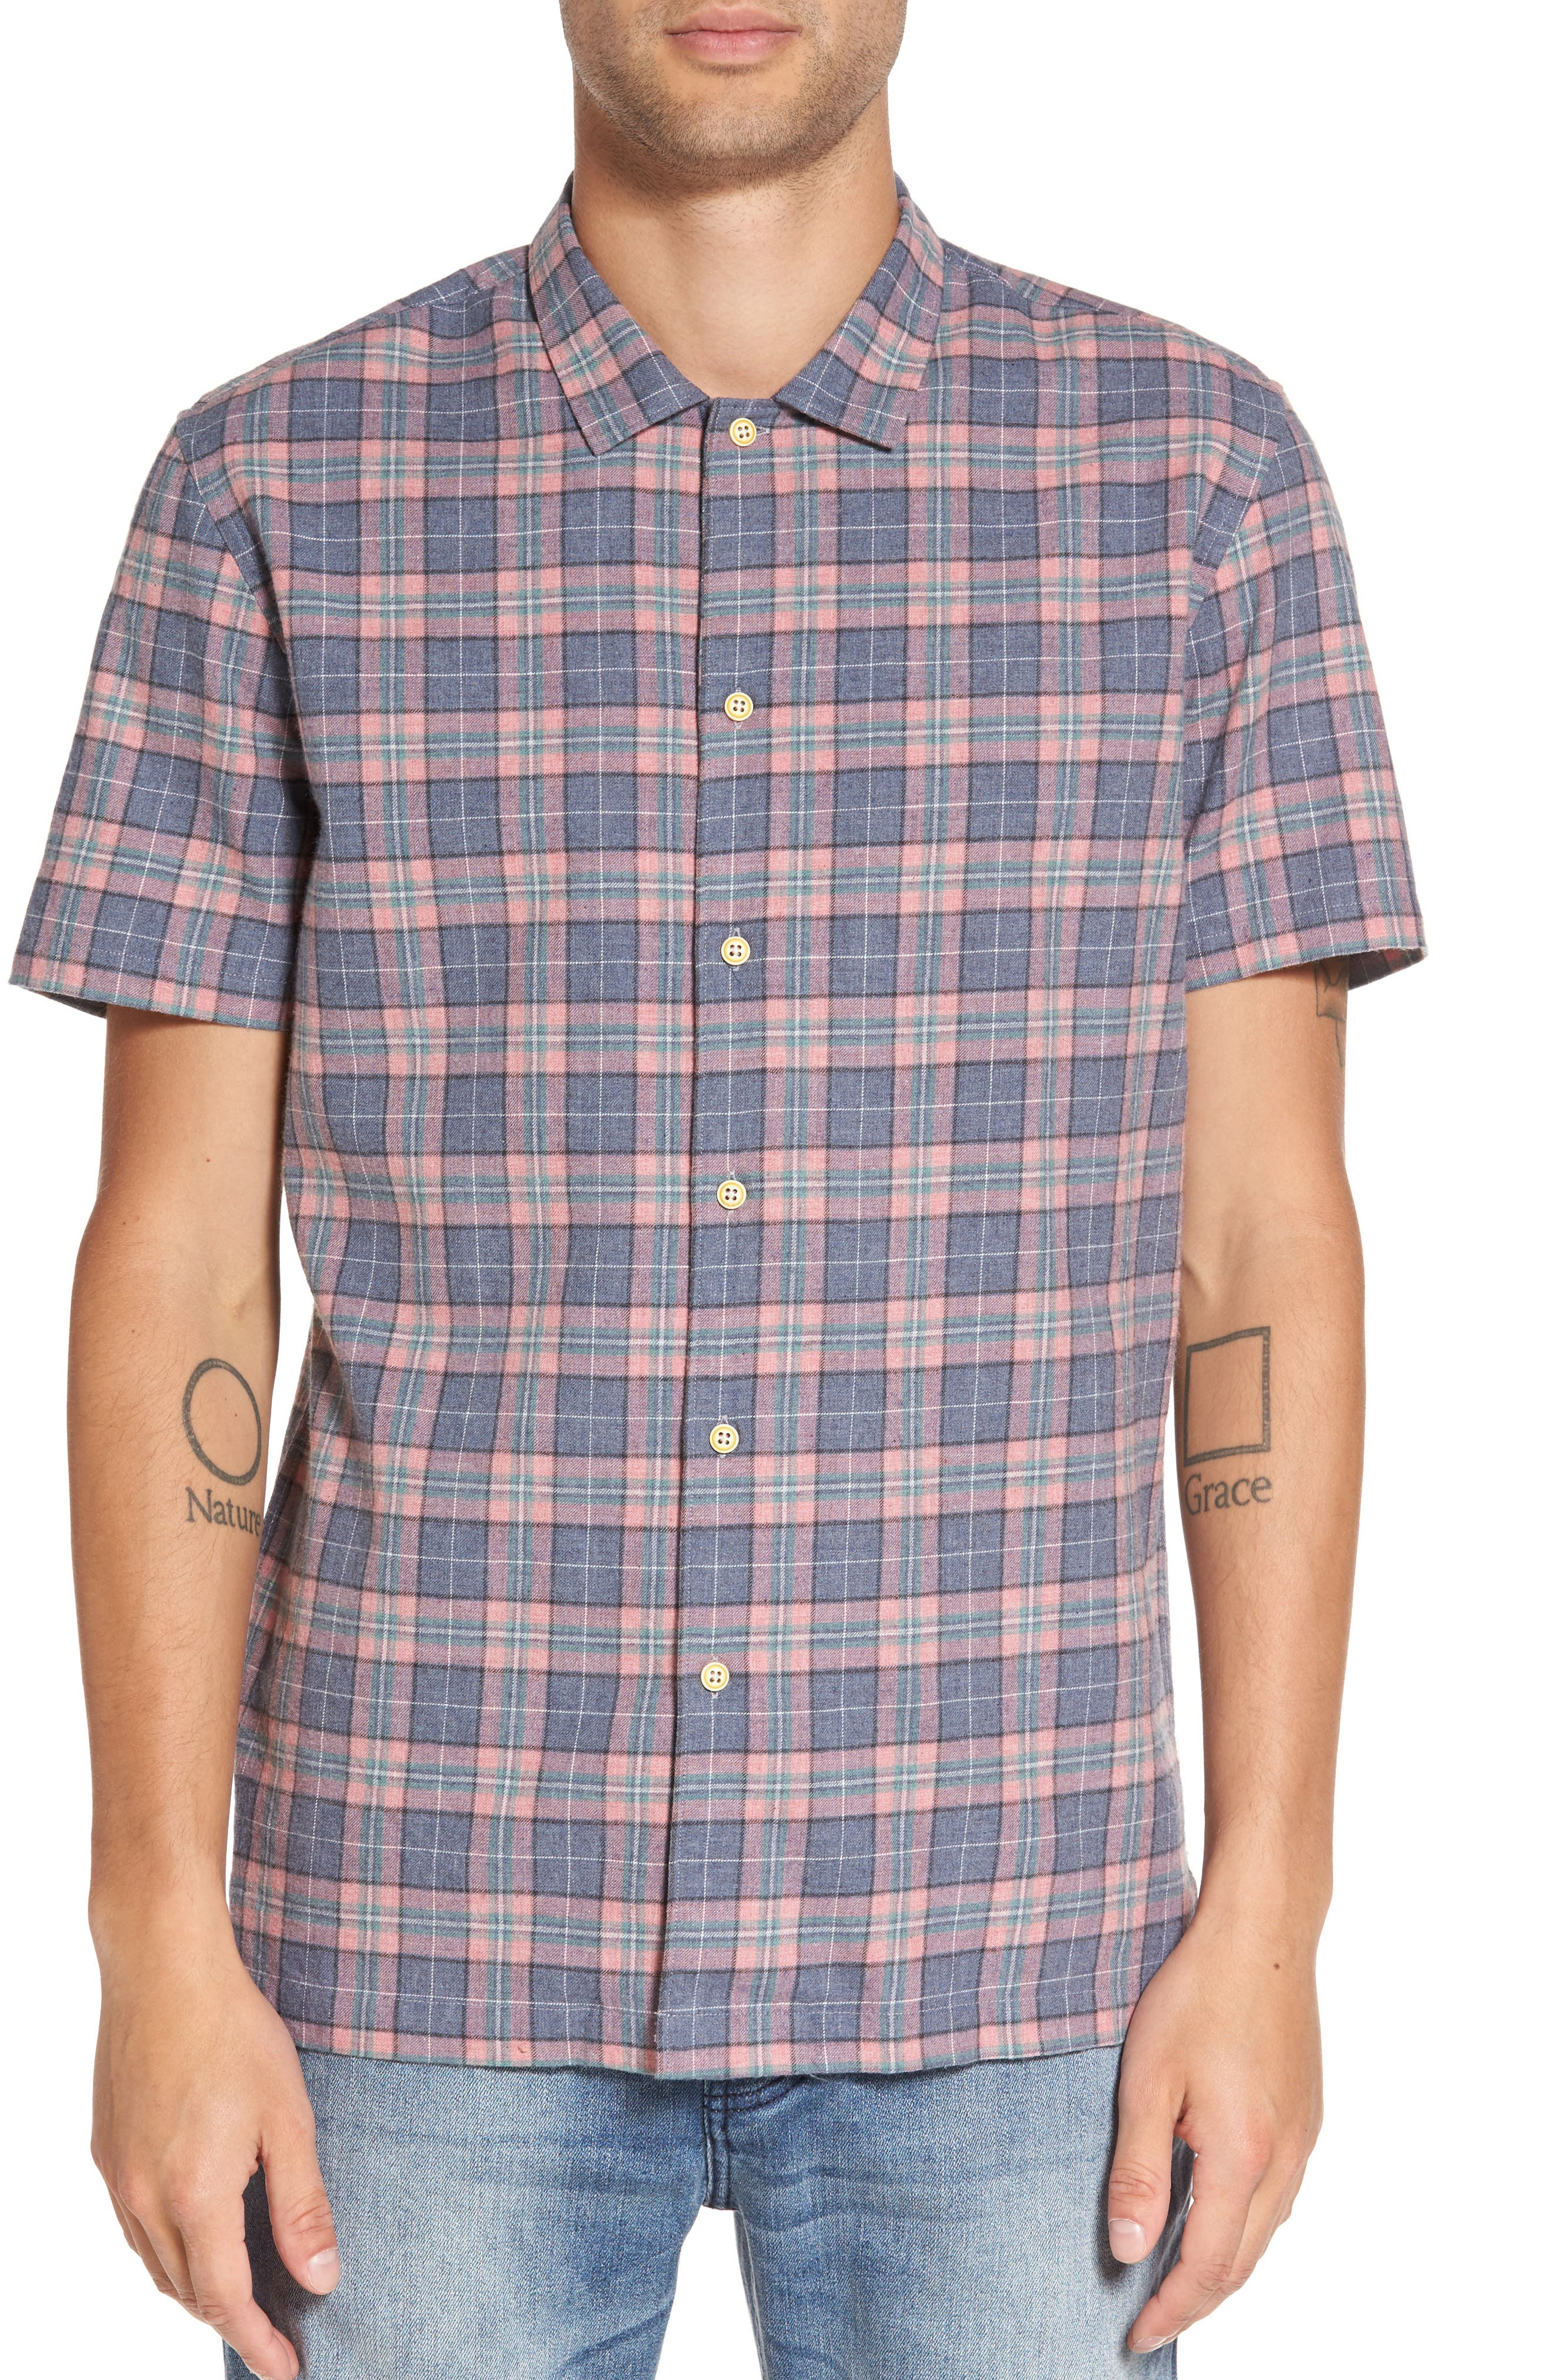 Florida Short Sleeve Plaid Shirt,                         Main,                         color, 450